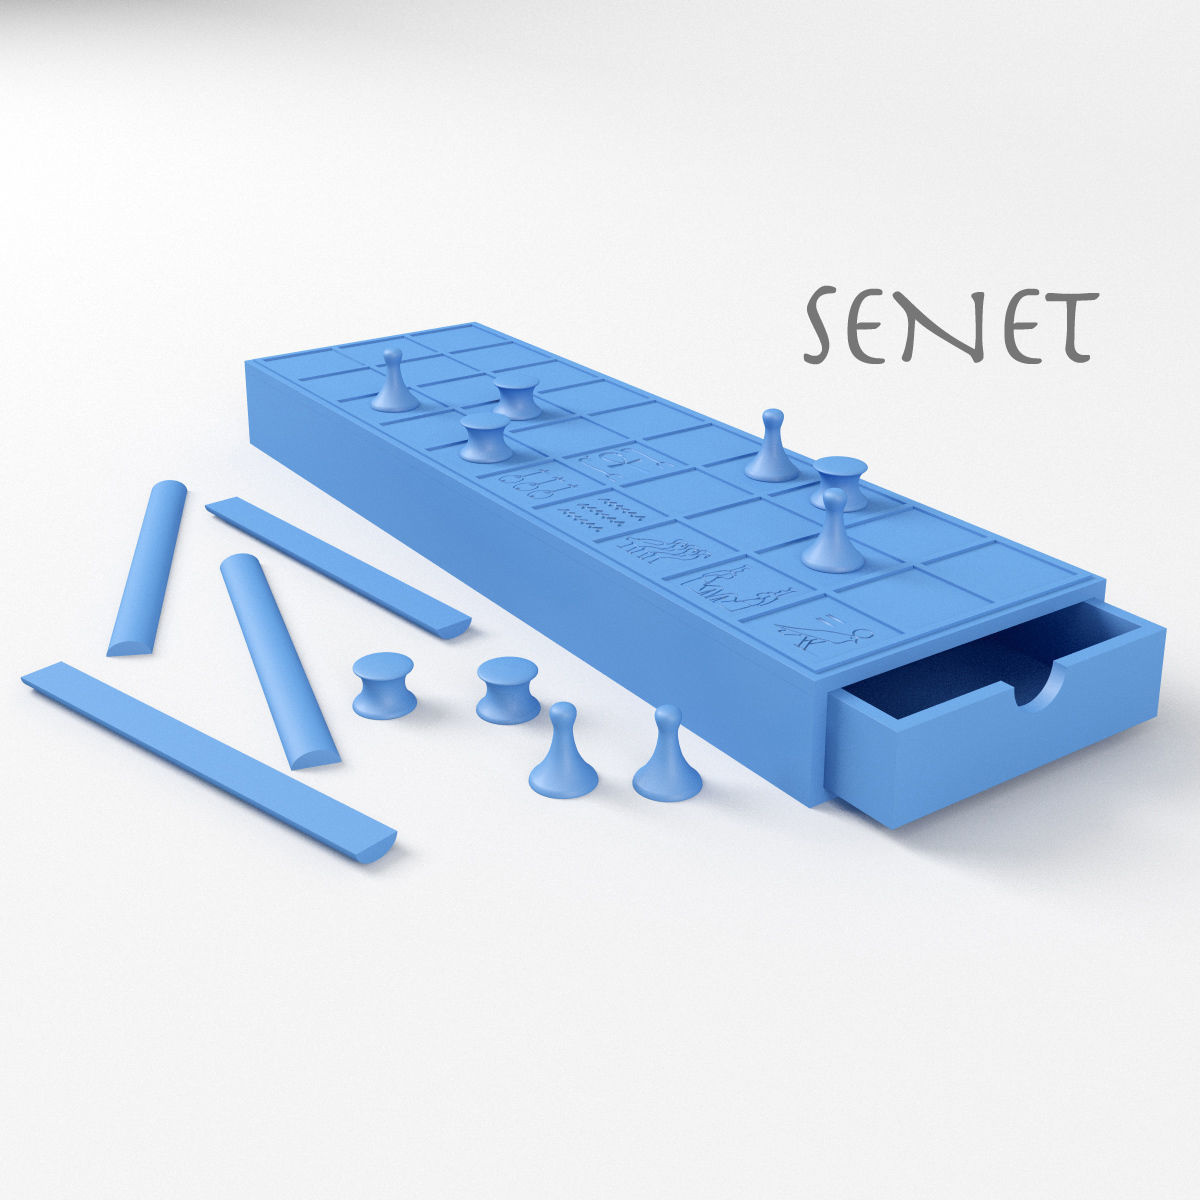 Senet Ancient Egyptian Board Game